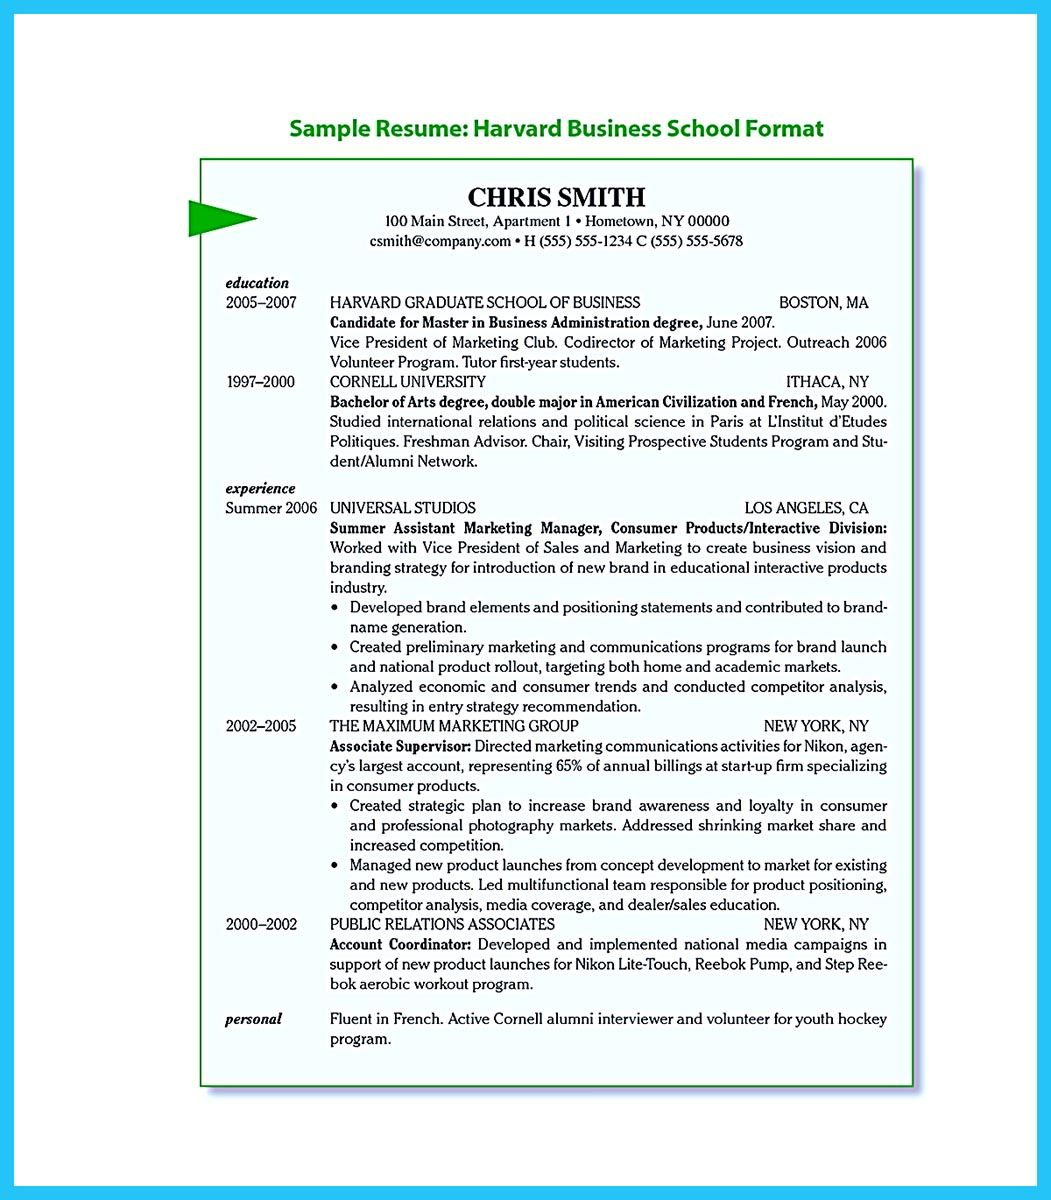 45++ What are some examples of accomplishments for a resume Examples